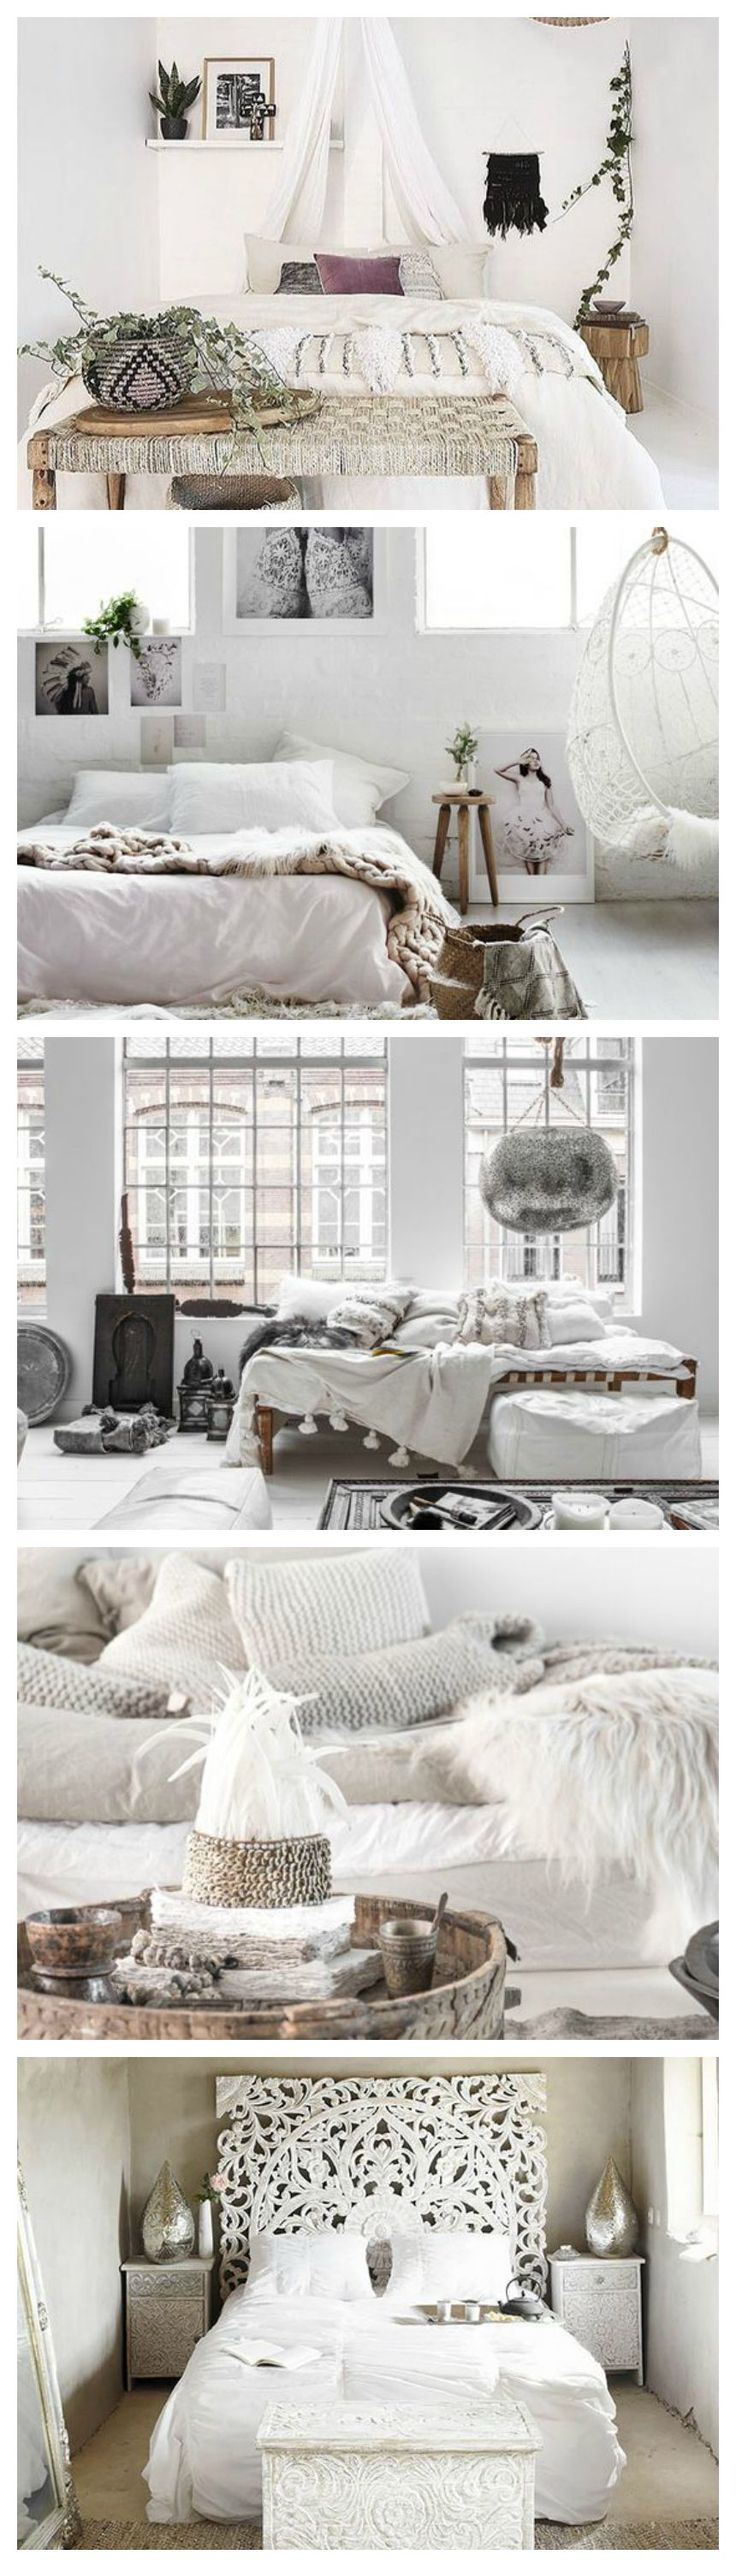 Bohemian Heaven {Fresh Boho Chic Home Decor Inspiration} Fresh Boho Chic Home Decor Inspiration. Clean white home decor. Bohemian bedrooms. Bohemian home decor. White bohemian decor.